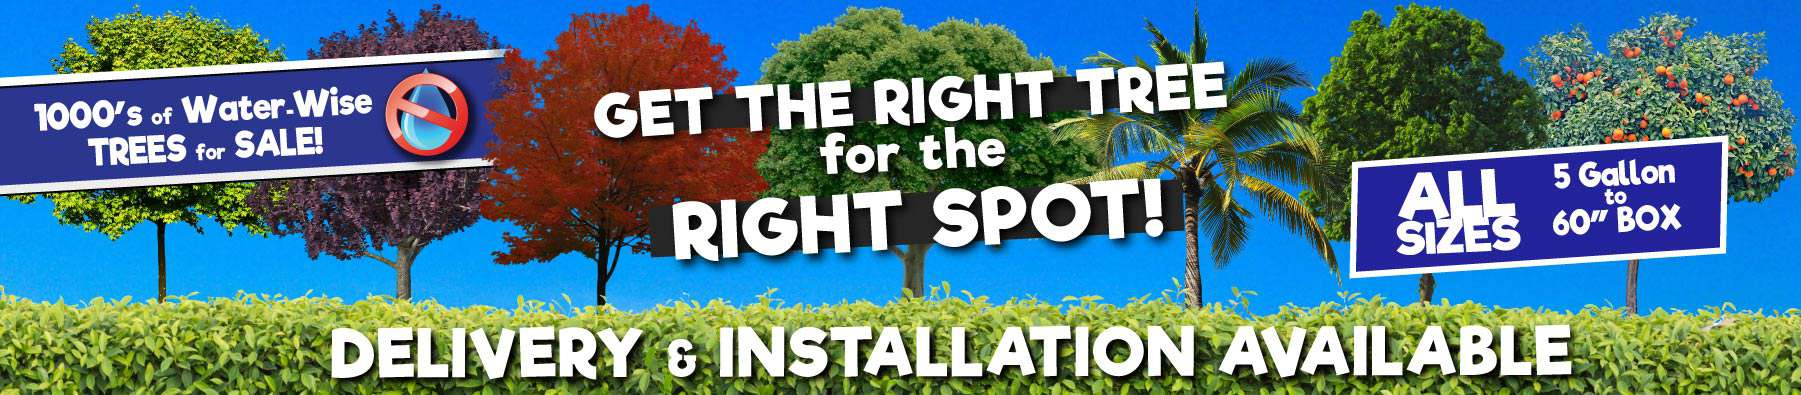 Get the Right Tree for the right Spot